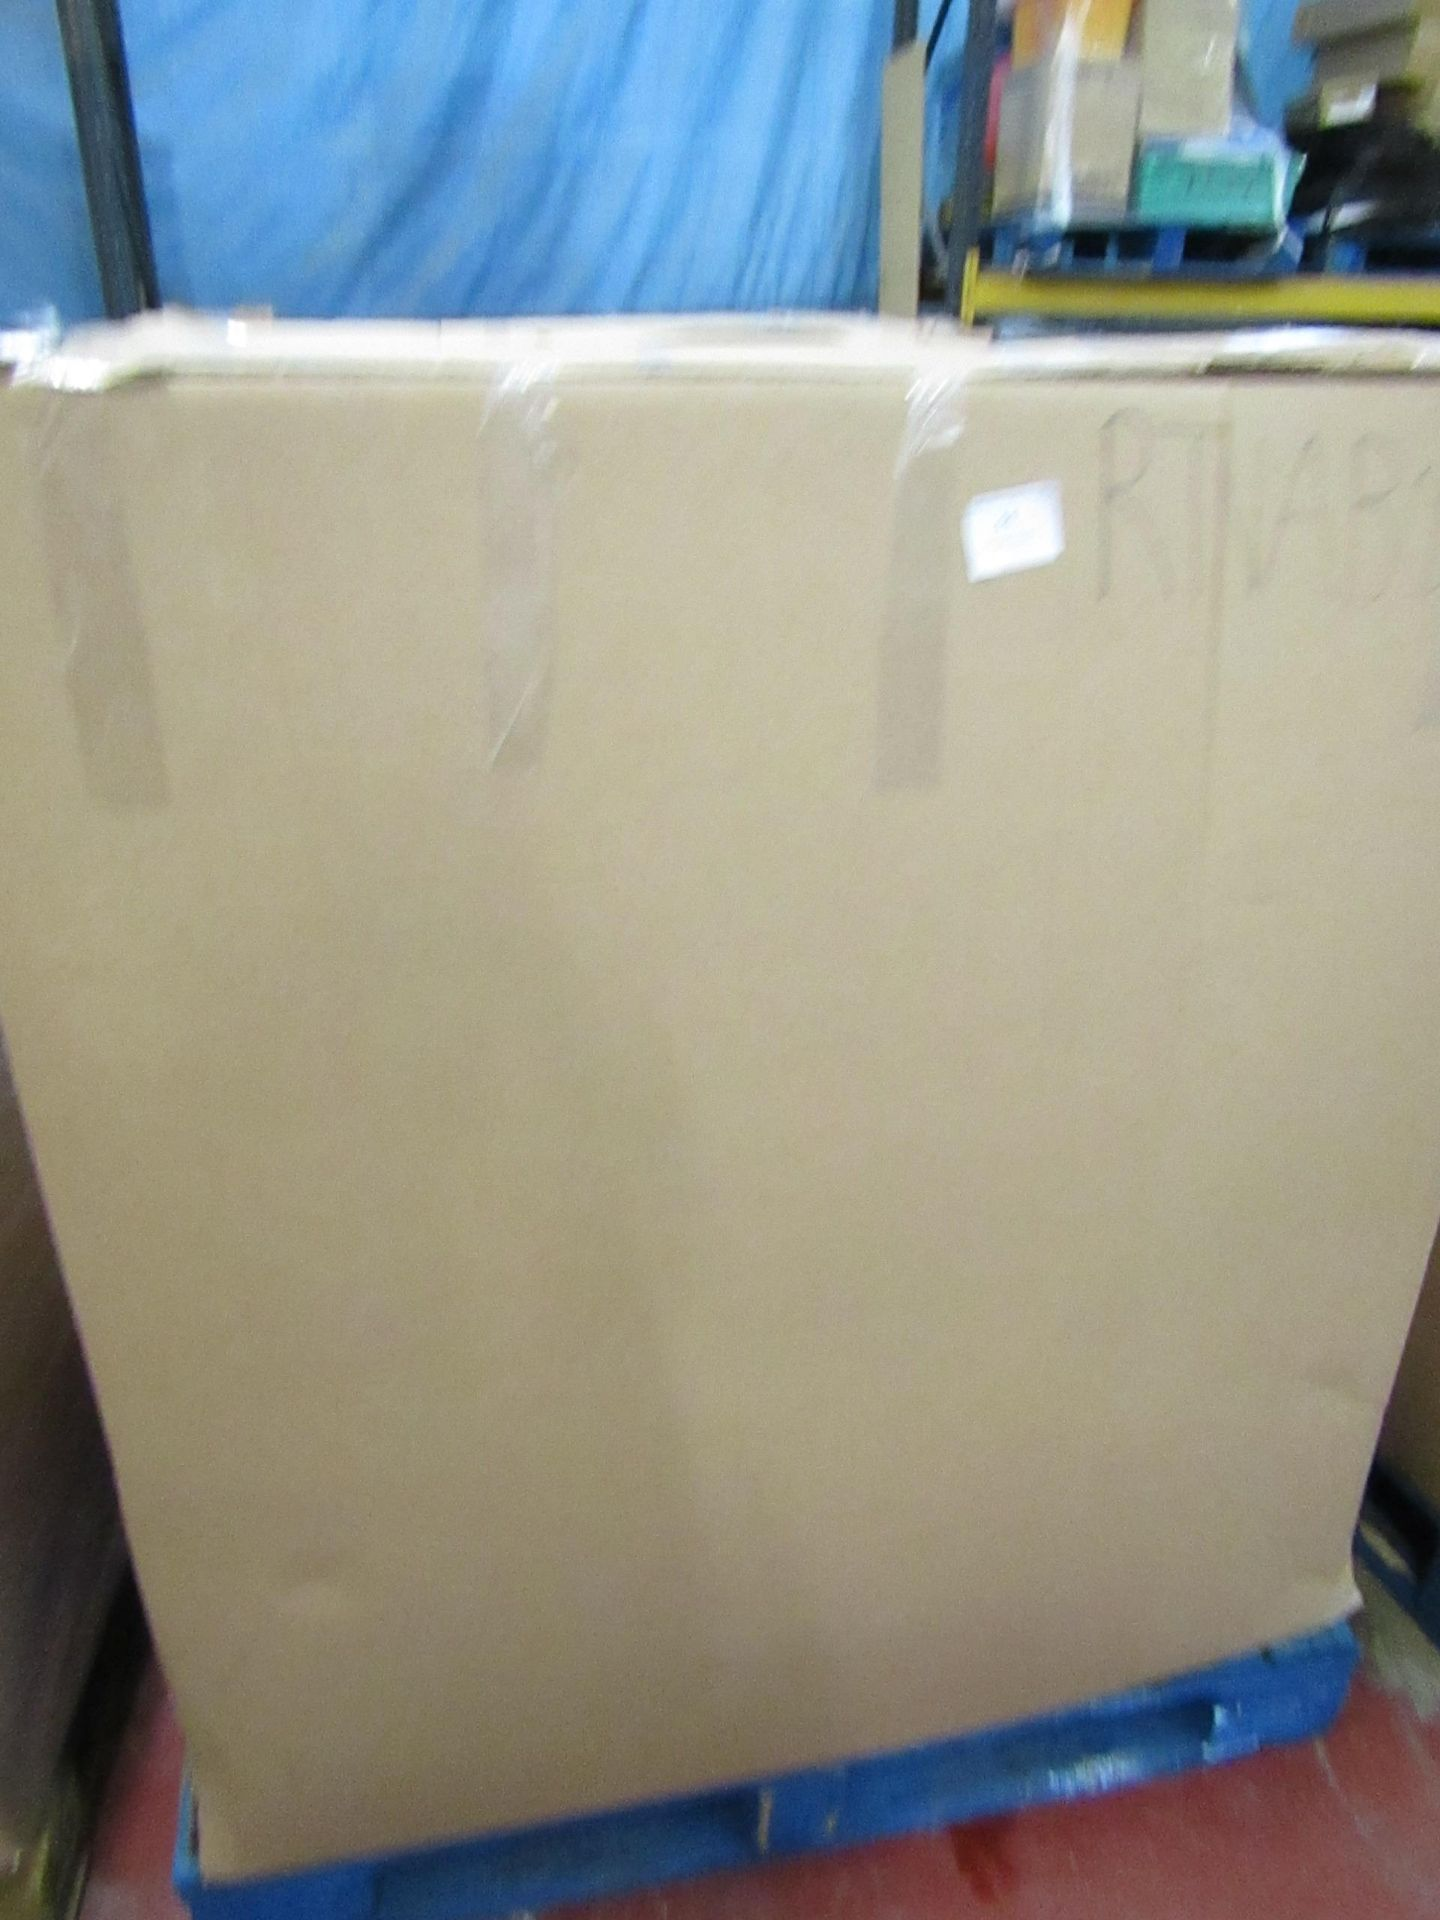 Lot 11 - | 36X | THE PALLET CONTAINS VARIOUS SIZED YAWN AIR BEDS | BOXED AND UNCHECKED | NO ONLINE RE-